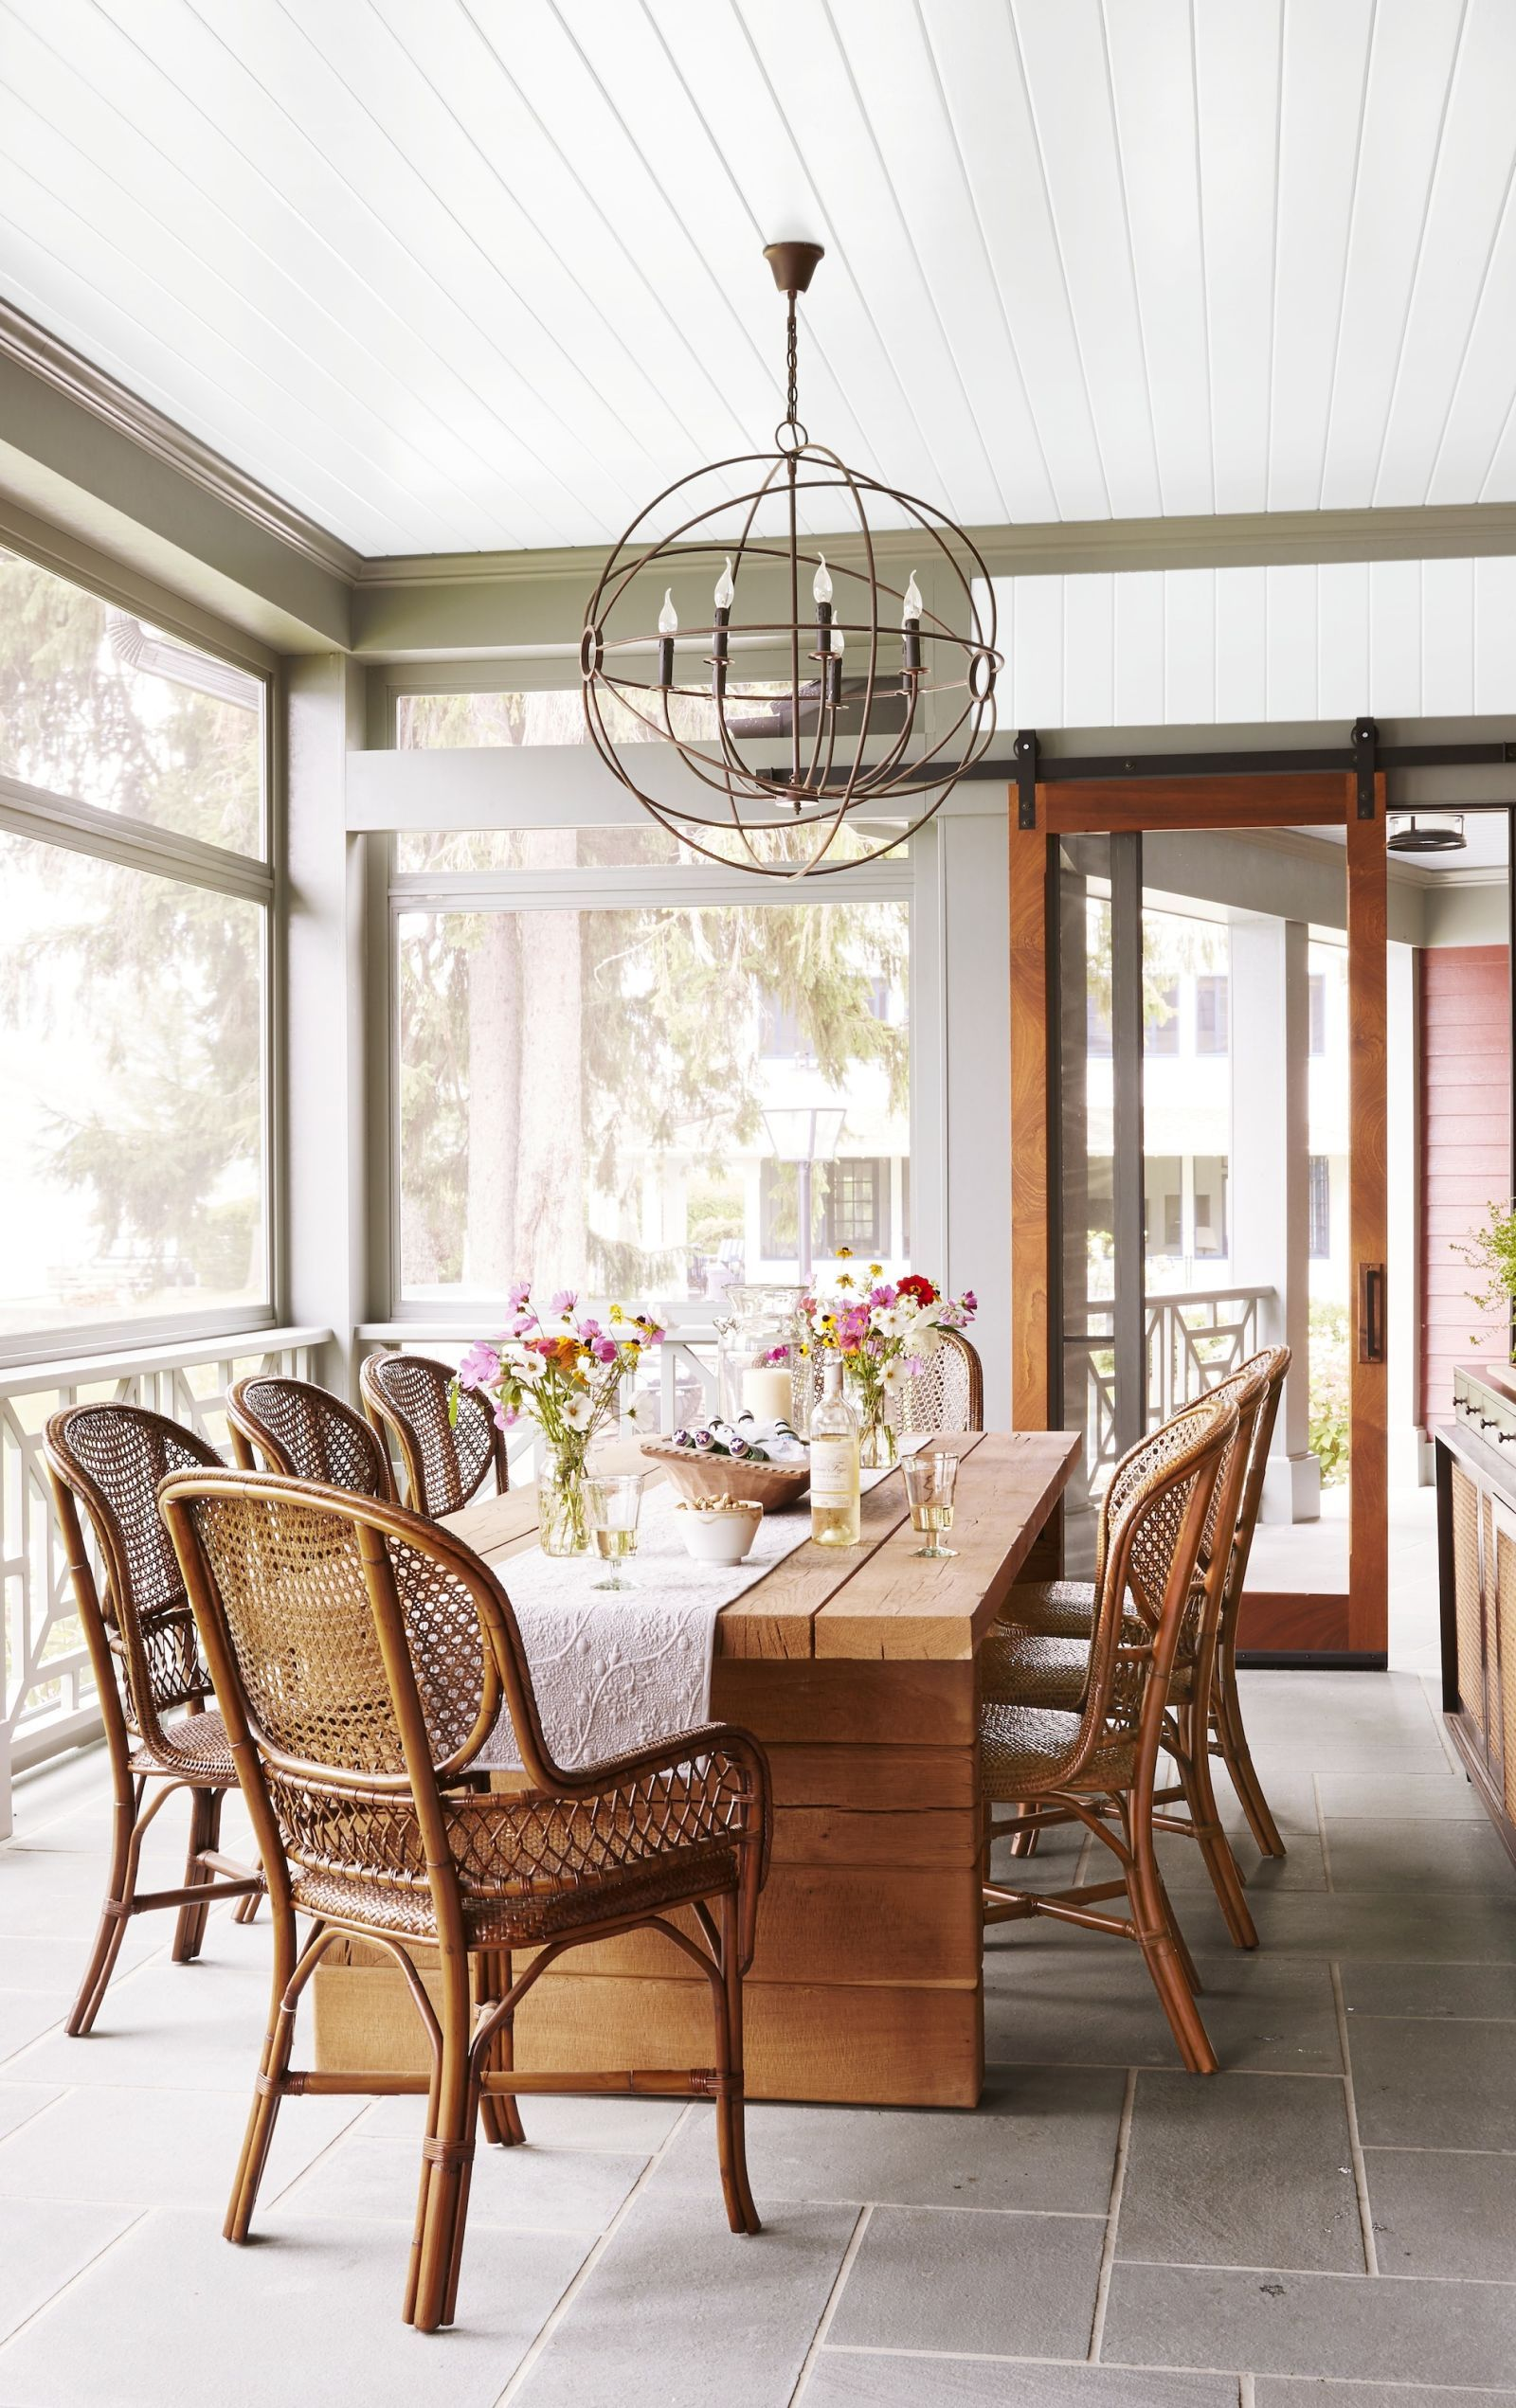 image & 10 Sunroom Decorating Ideas - Best Designs for Sun Rooms